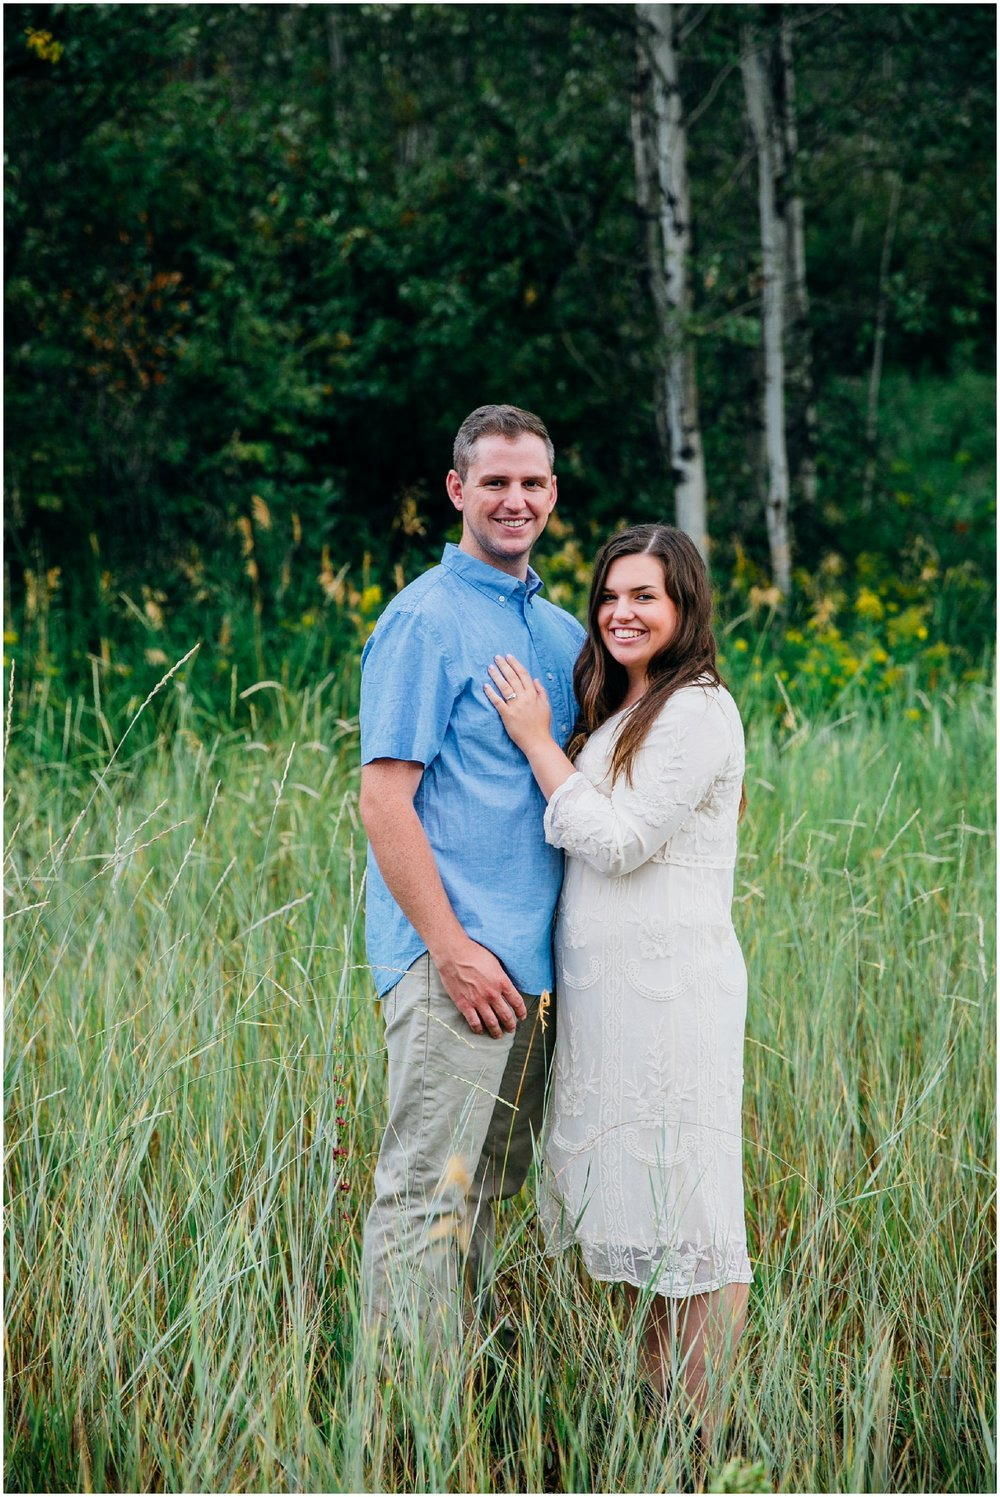 swan-valley-jackson-wyoming-engagements-idaho-colorado-wyoming-wedding-photographer_0896.jpg